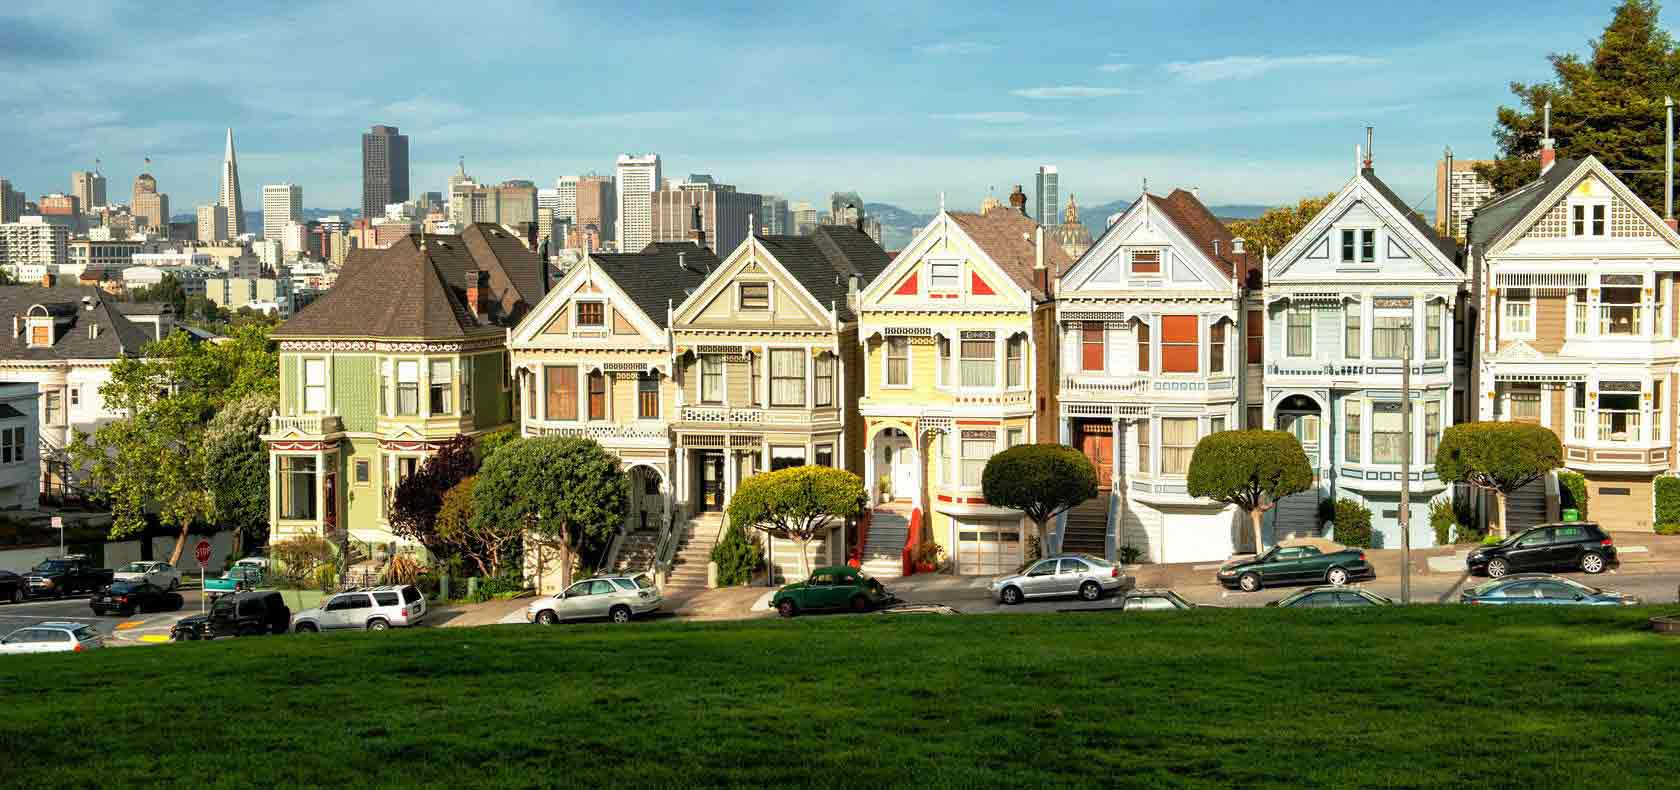 paintedladies